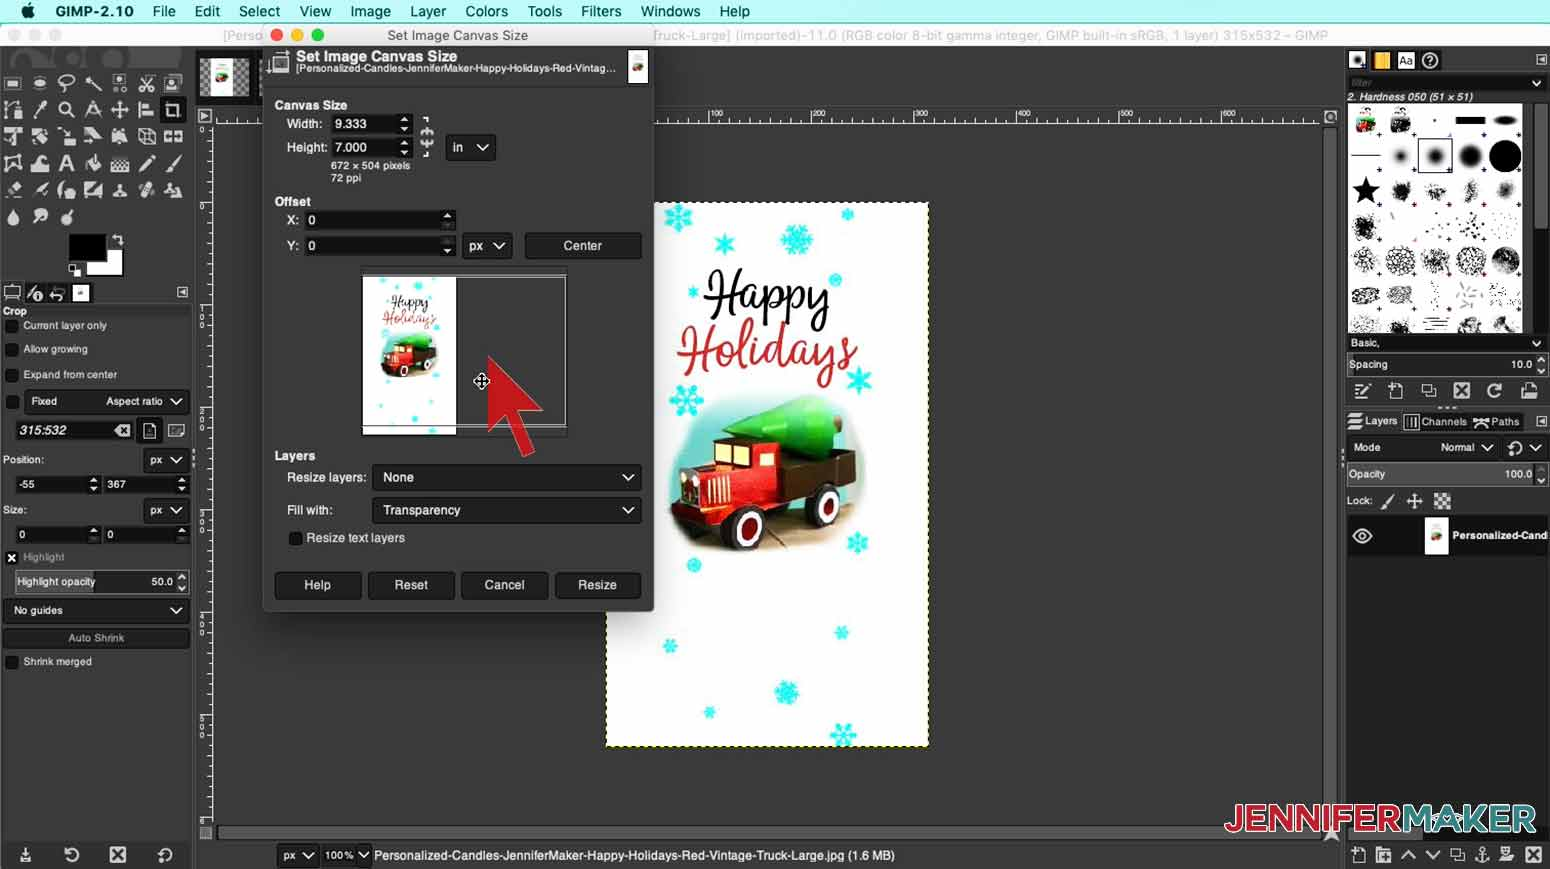 Change the measurement size of your image in GIMP for my personalized candles